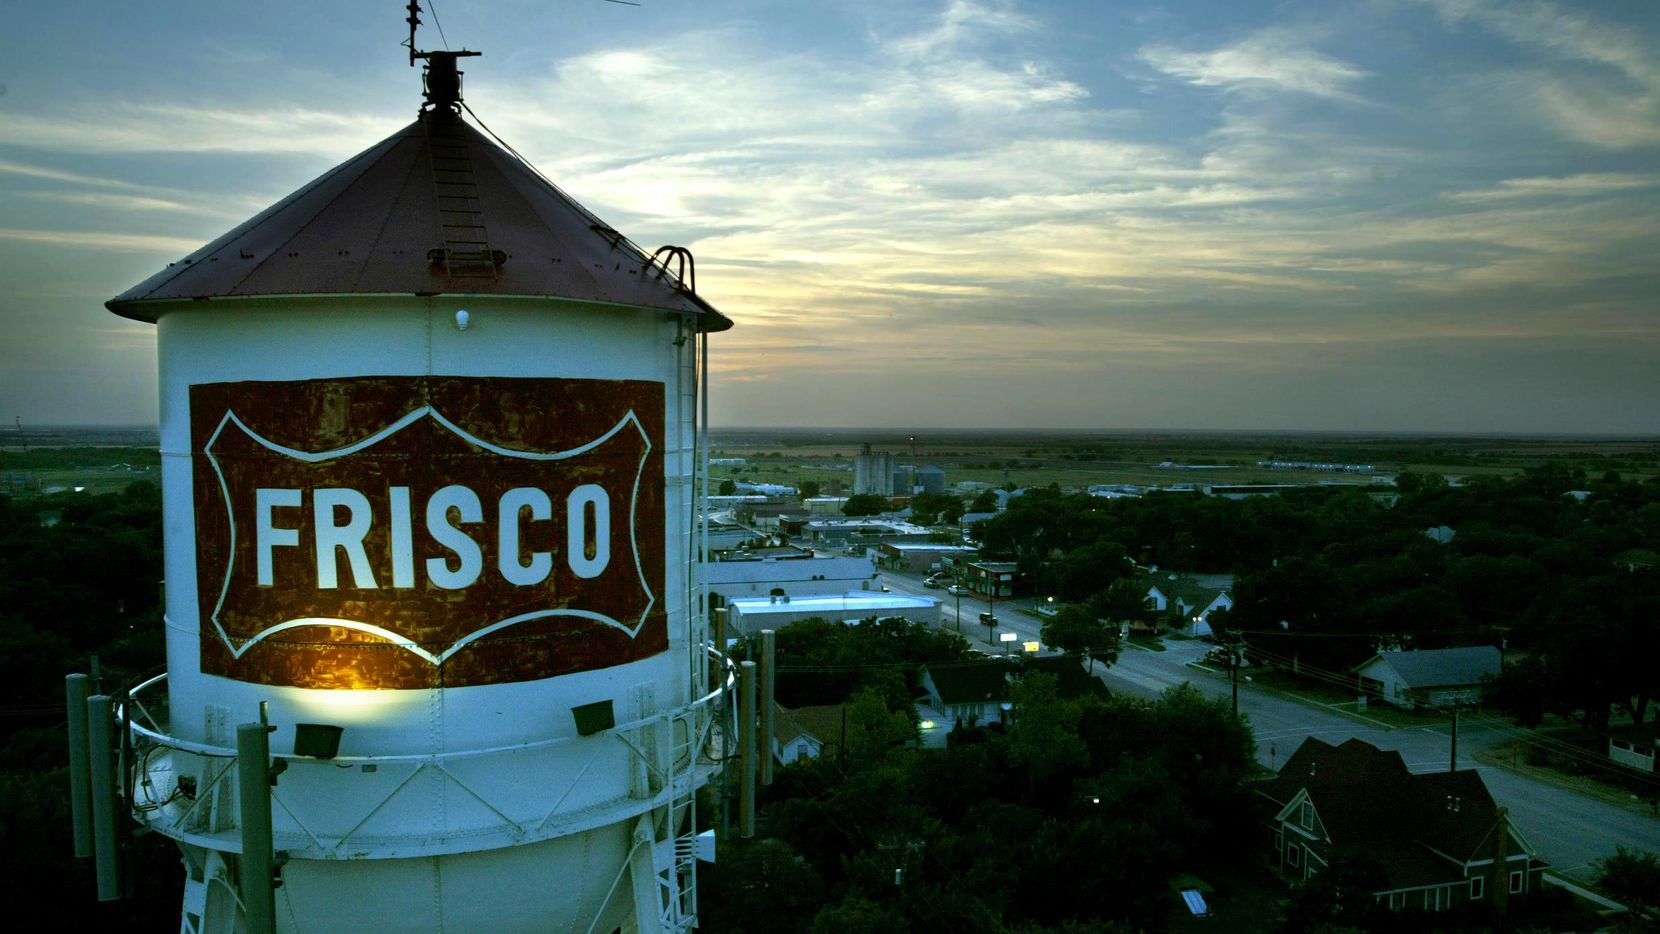 The Frisco water tower on July 30, 2003.